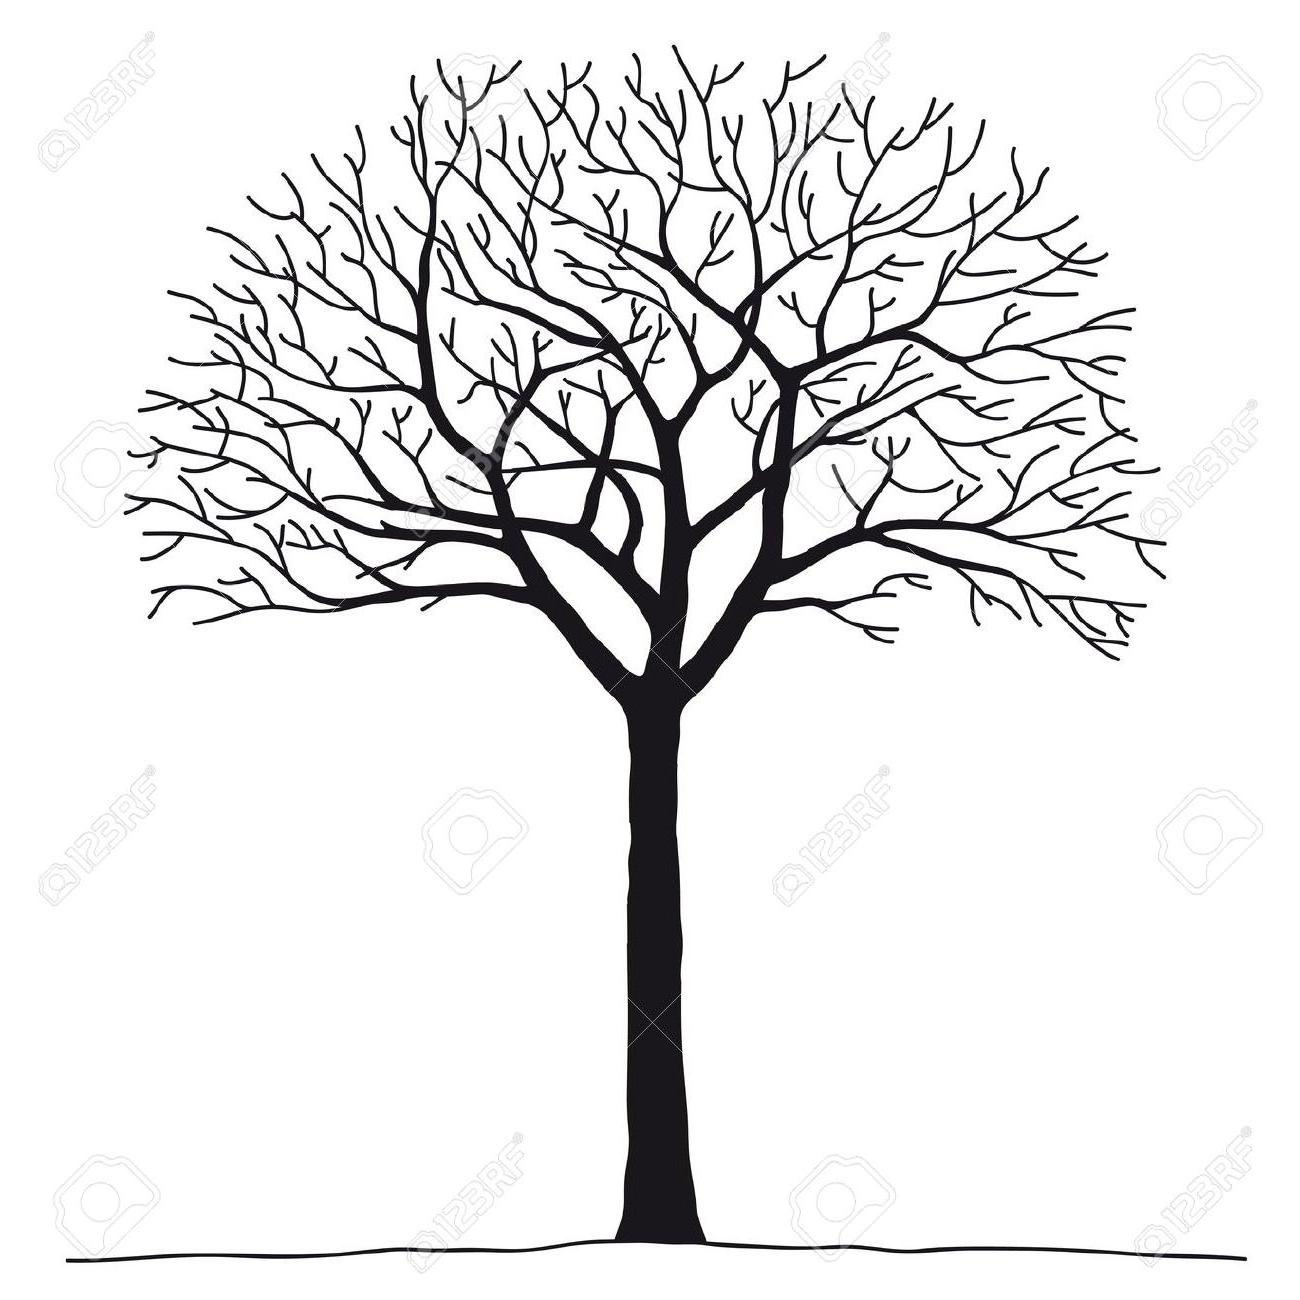 1300x1300 Hd Best Bare Tree Stock Vector Silhouette Design Image